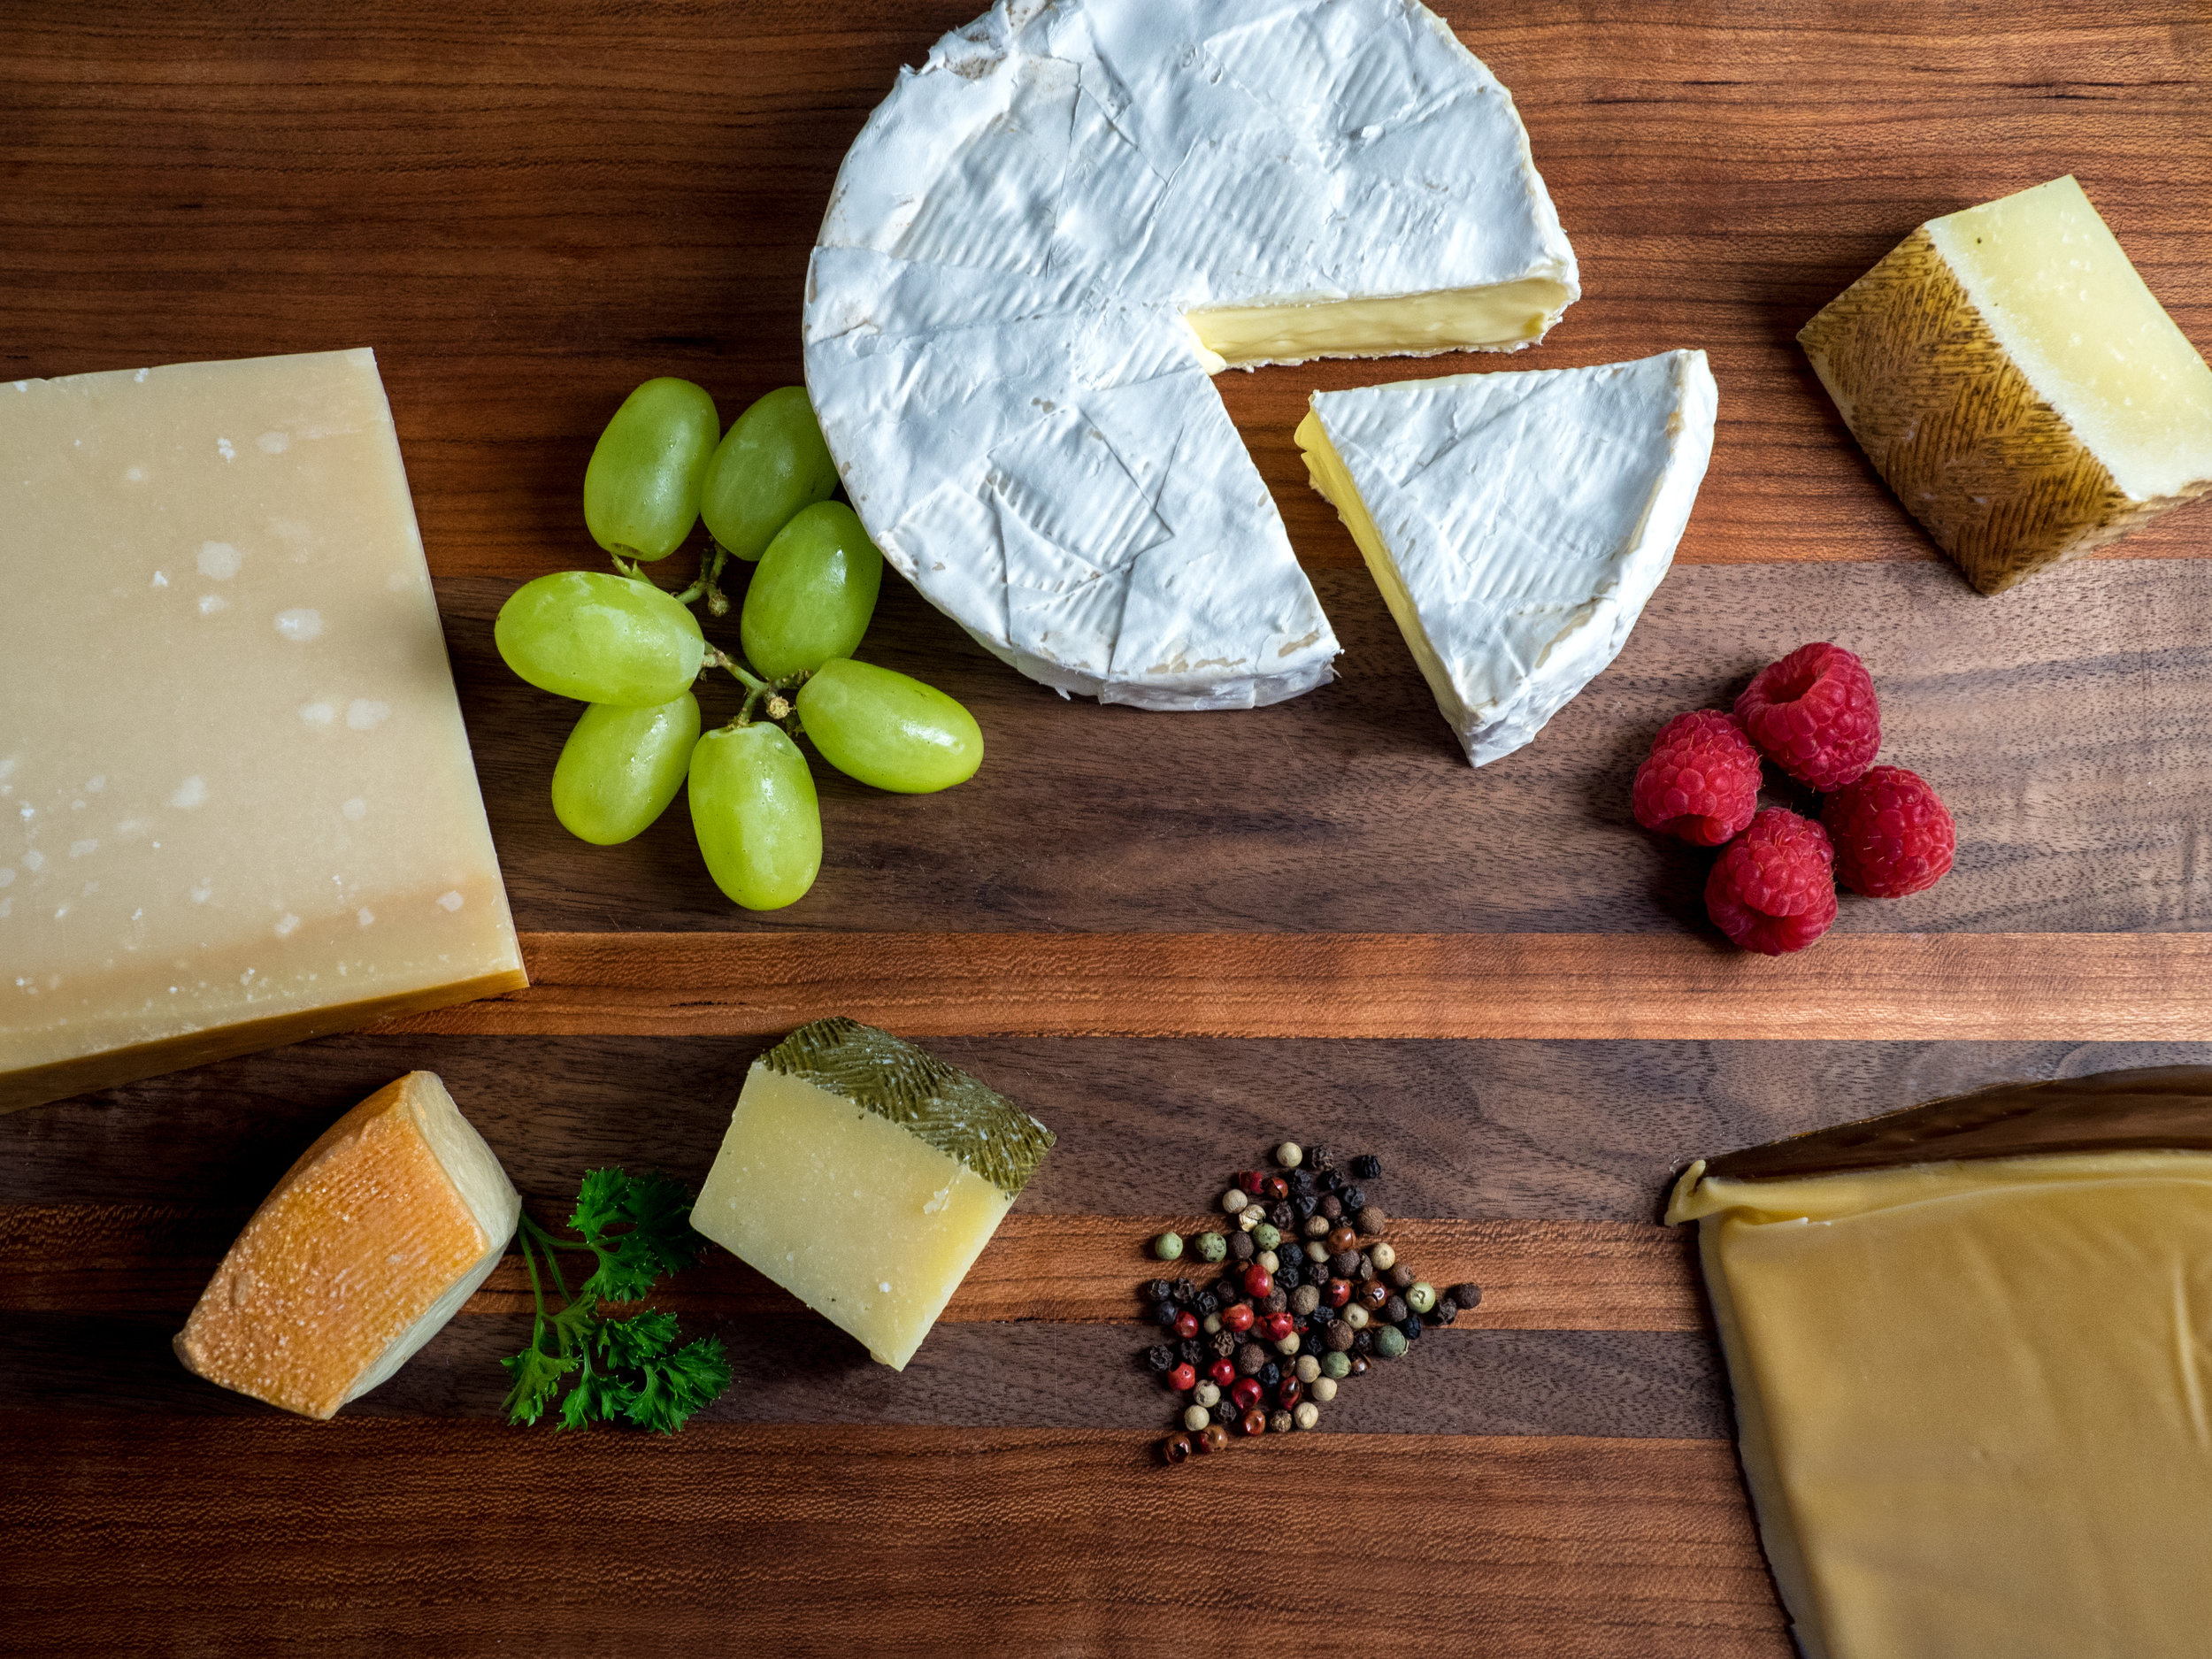 Musings by the Glass - Ode to Spanish Wine and Cheese - Cheese Board